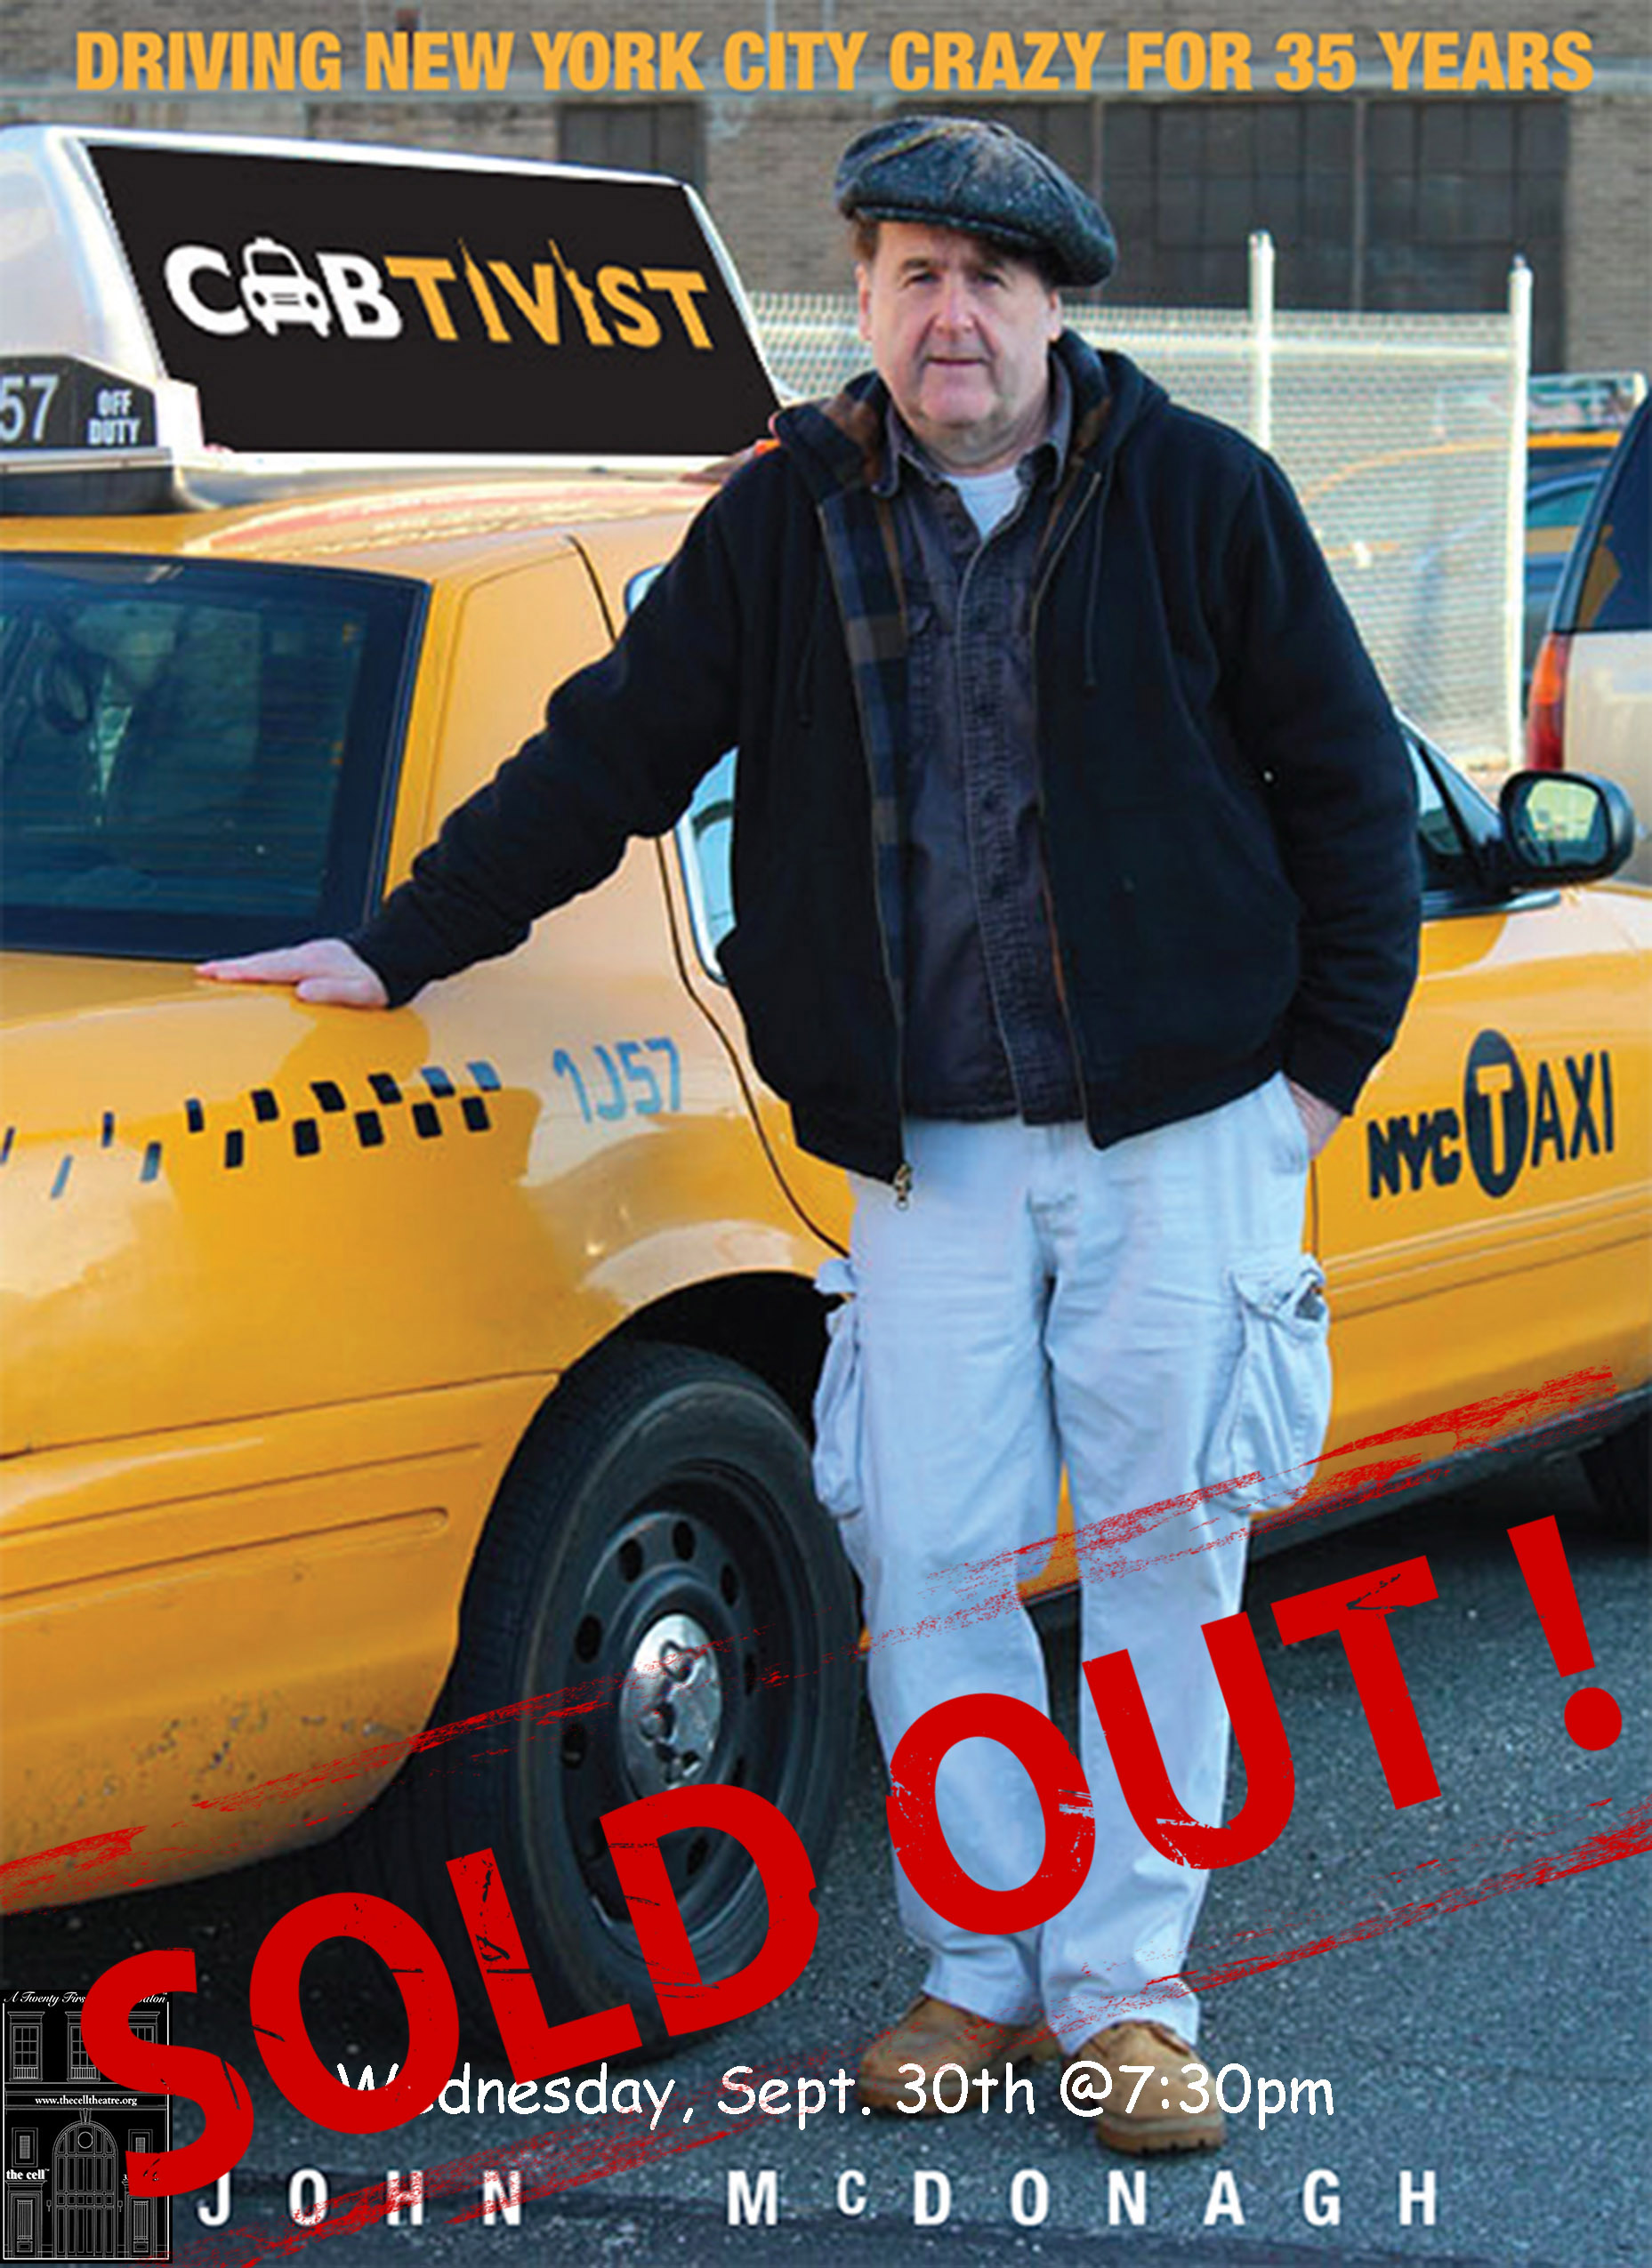 CABTIVIST written and performed by John McDonagh,veteran cabdriver and activist. These New York City stories are a hilarious, heartbreaking, and honest tour de force.